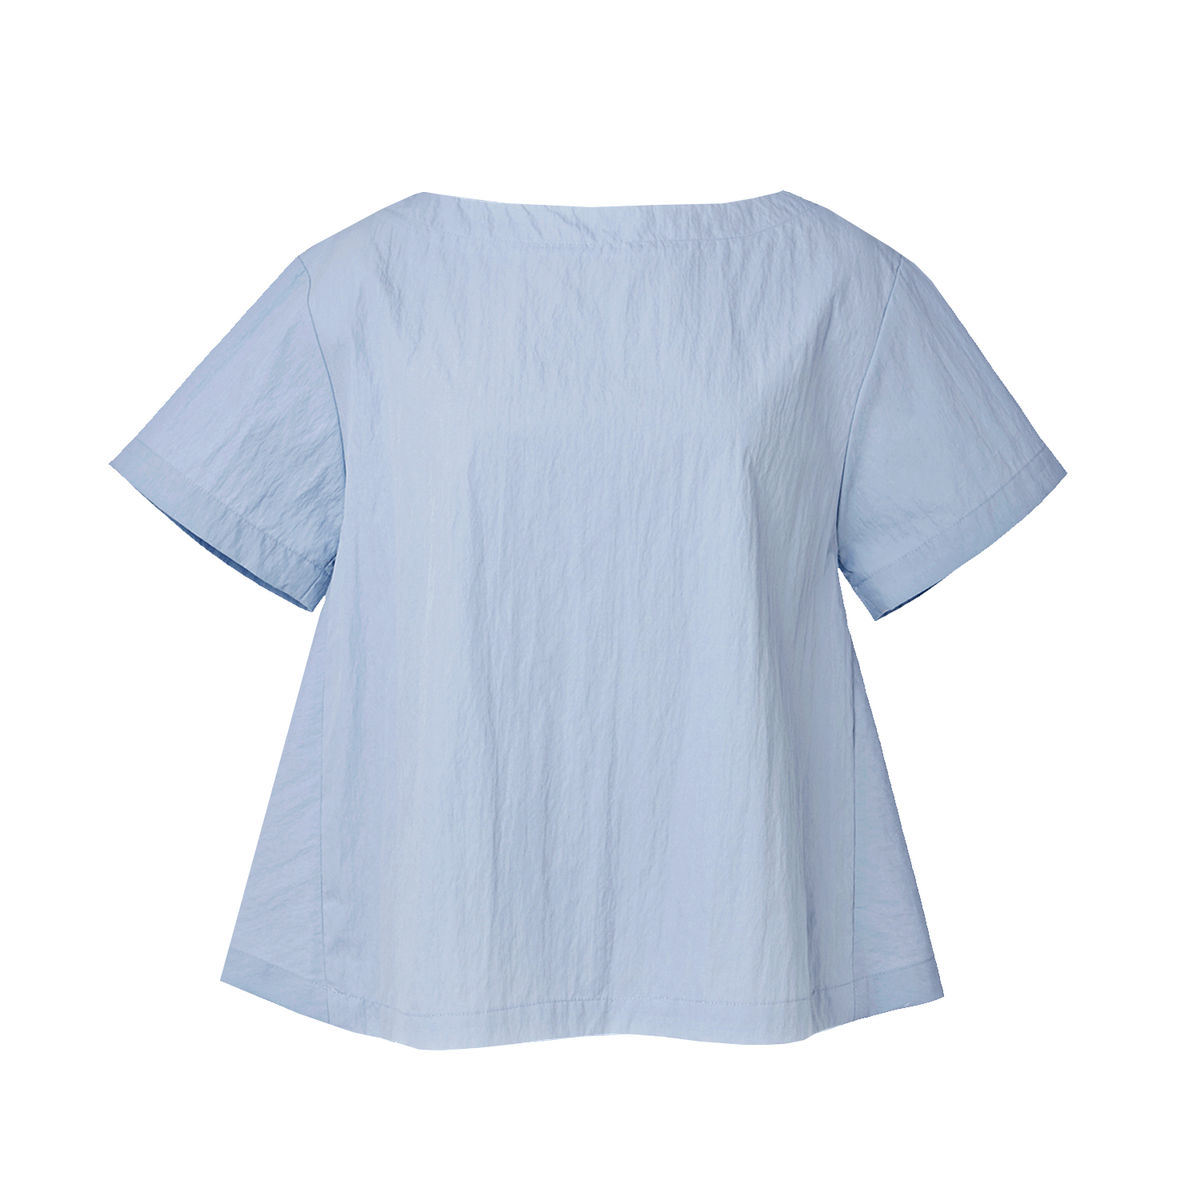 Neck-Bowed 'Lolita' Top - LightBlue - product images  of